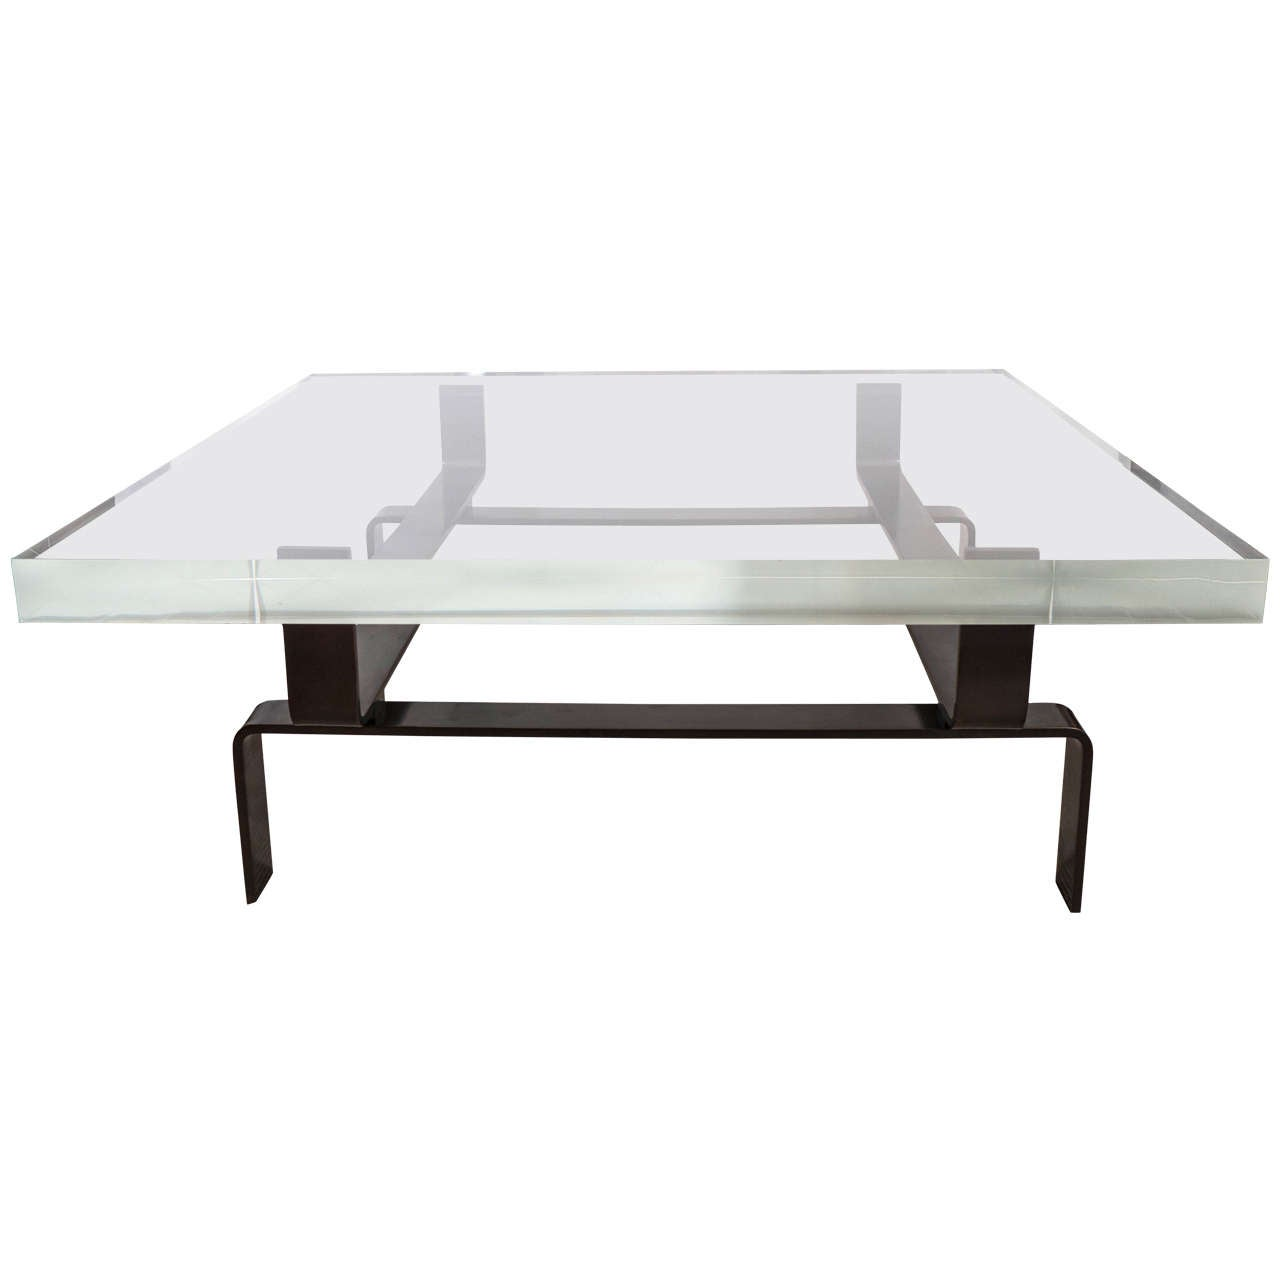 Wood Slab And Lucite Coffee Table At 1stdibs: Limited Edition Lucite And Statuary Bronze Custom Designed